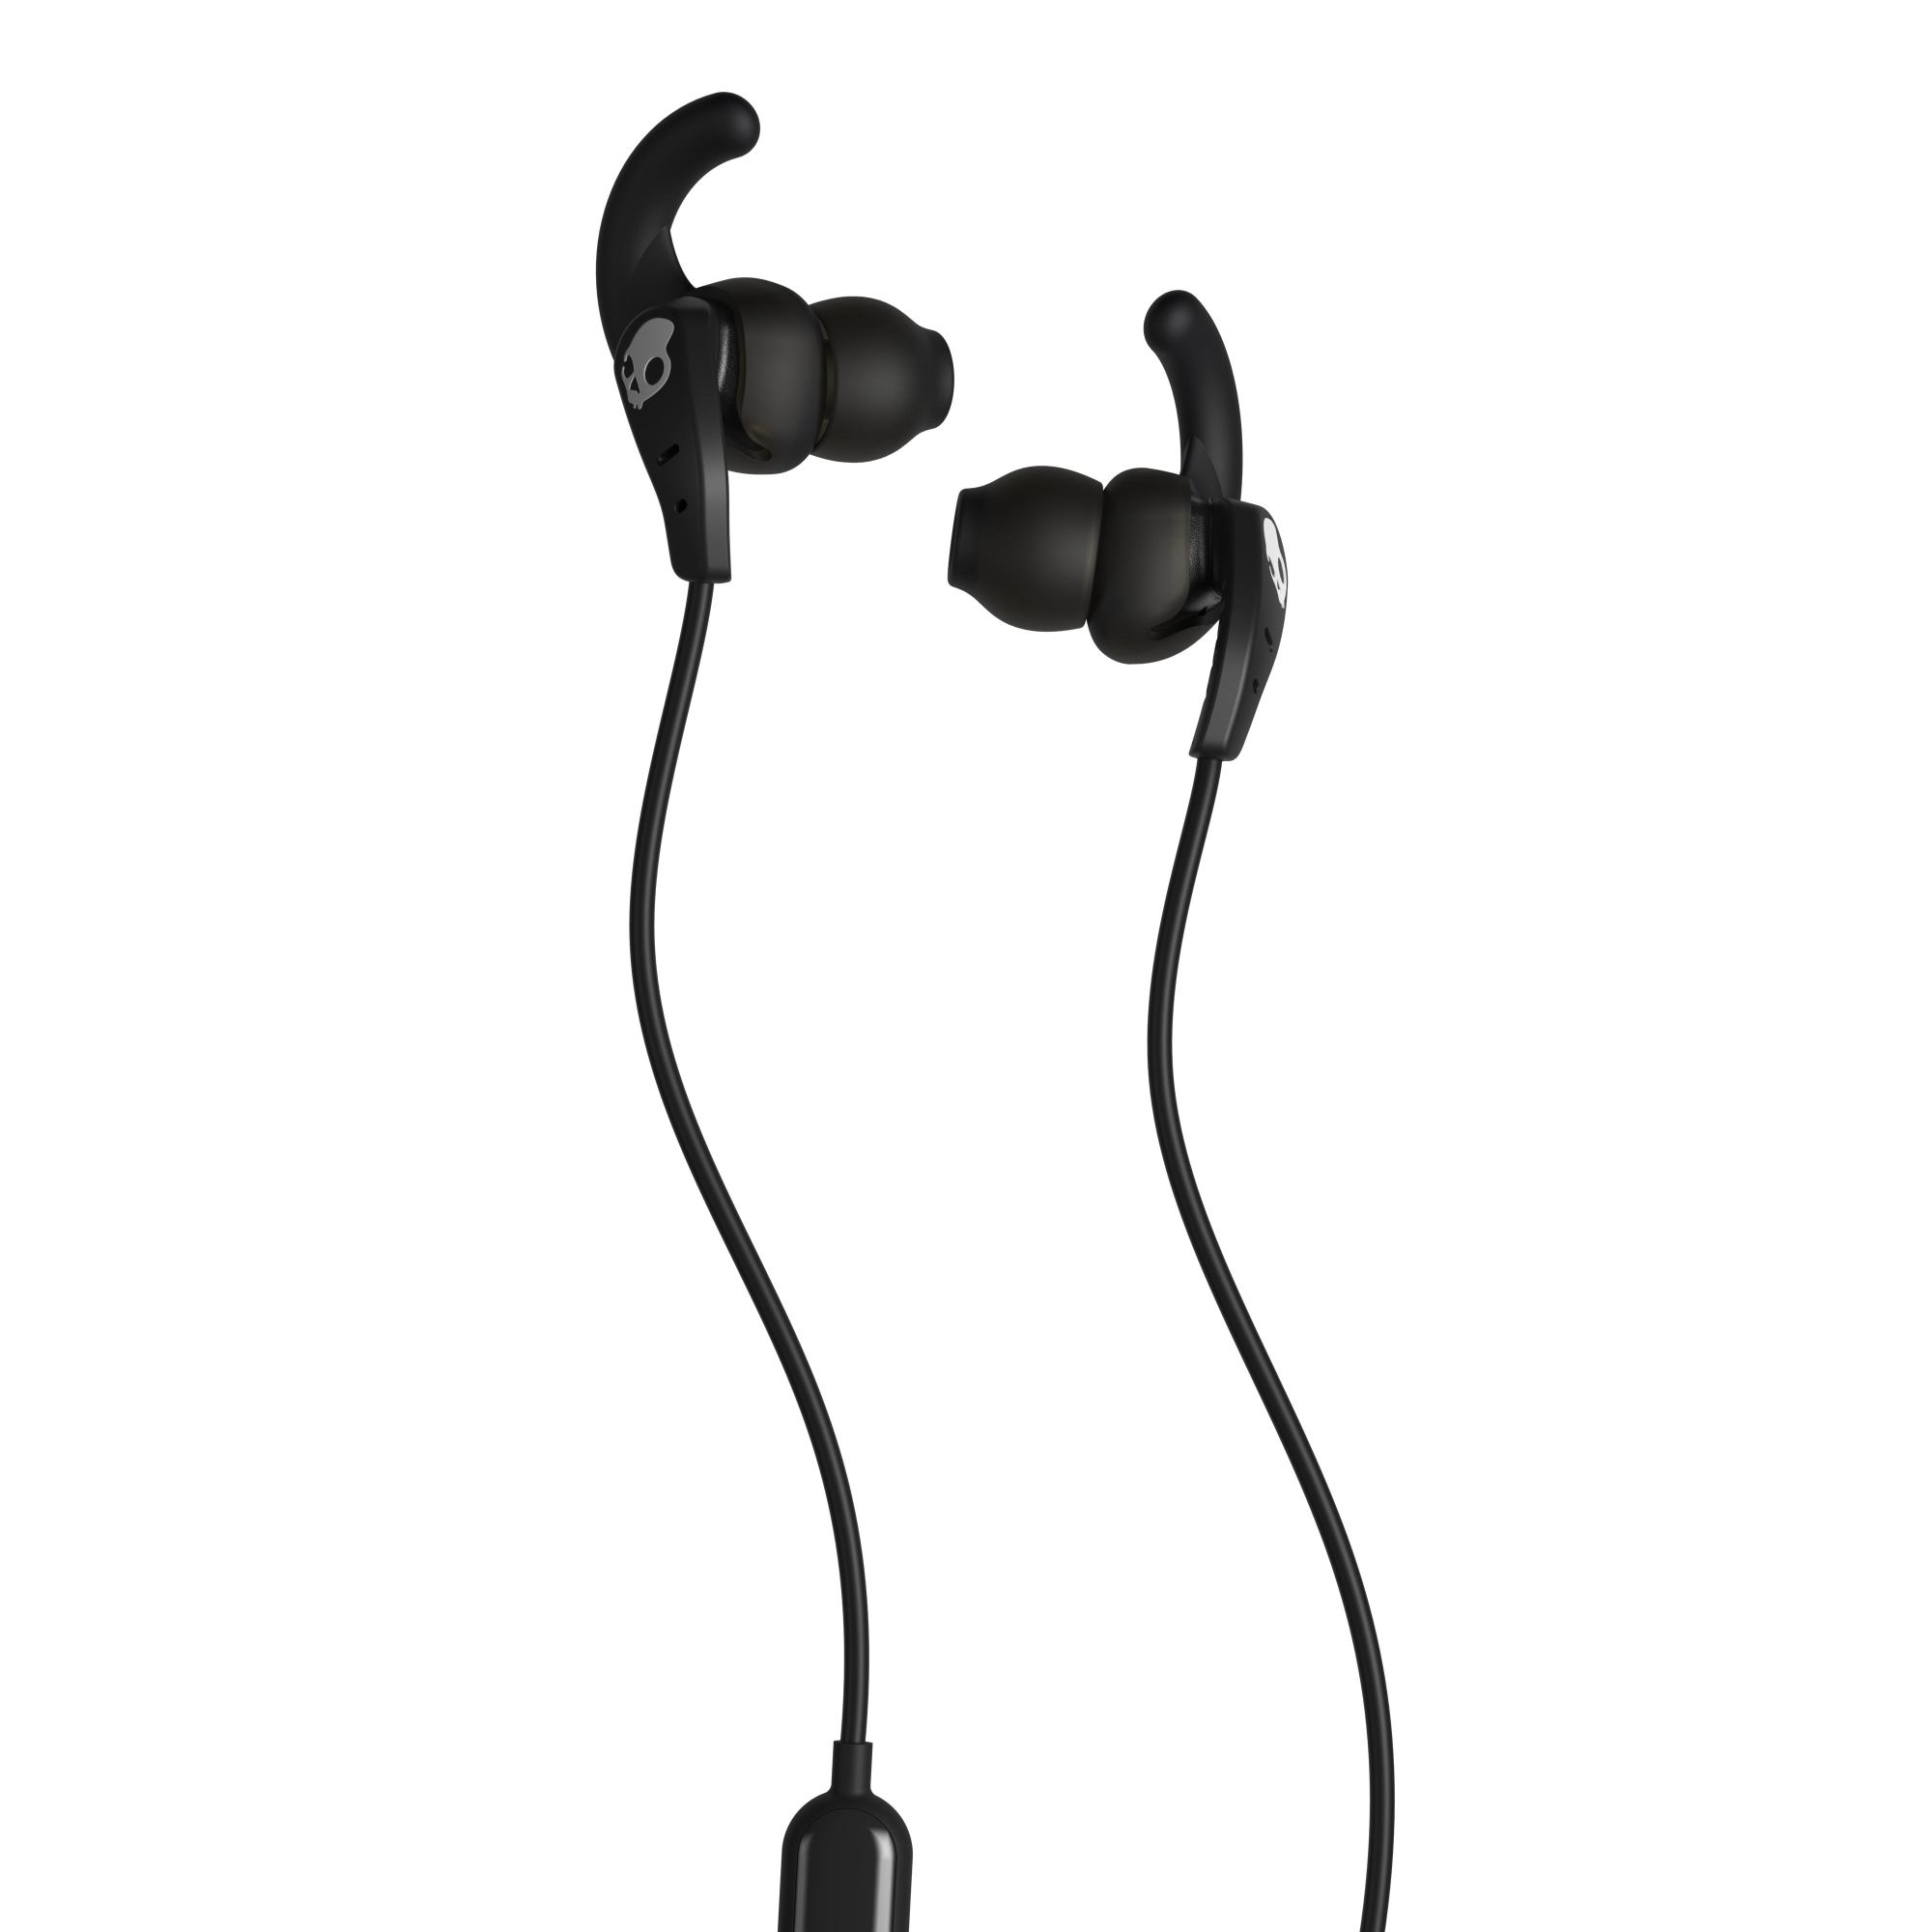 hight resolution of skullcandy set in ear w mic s2mey l670 headphones black white